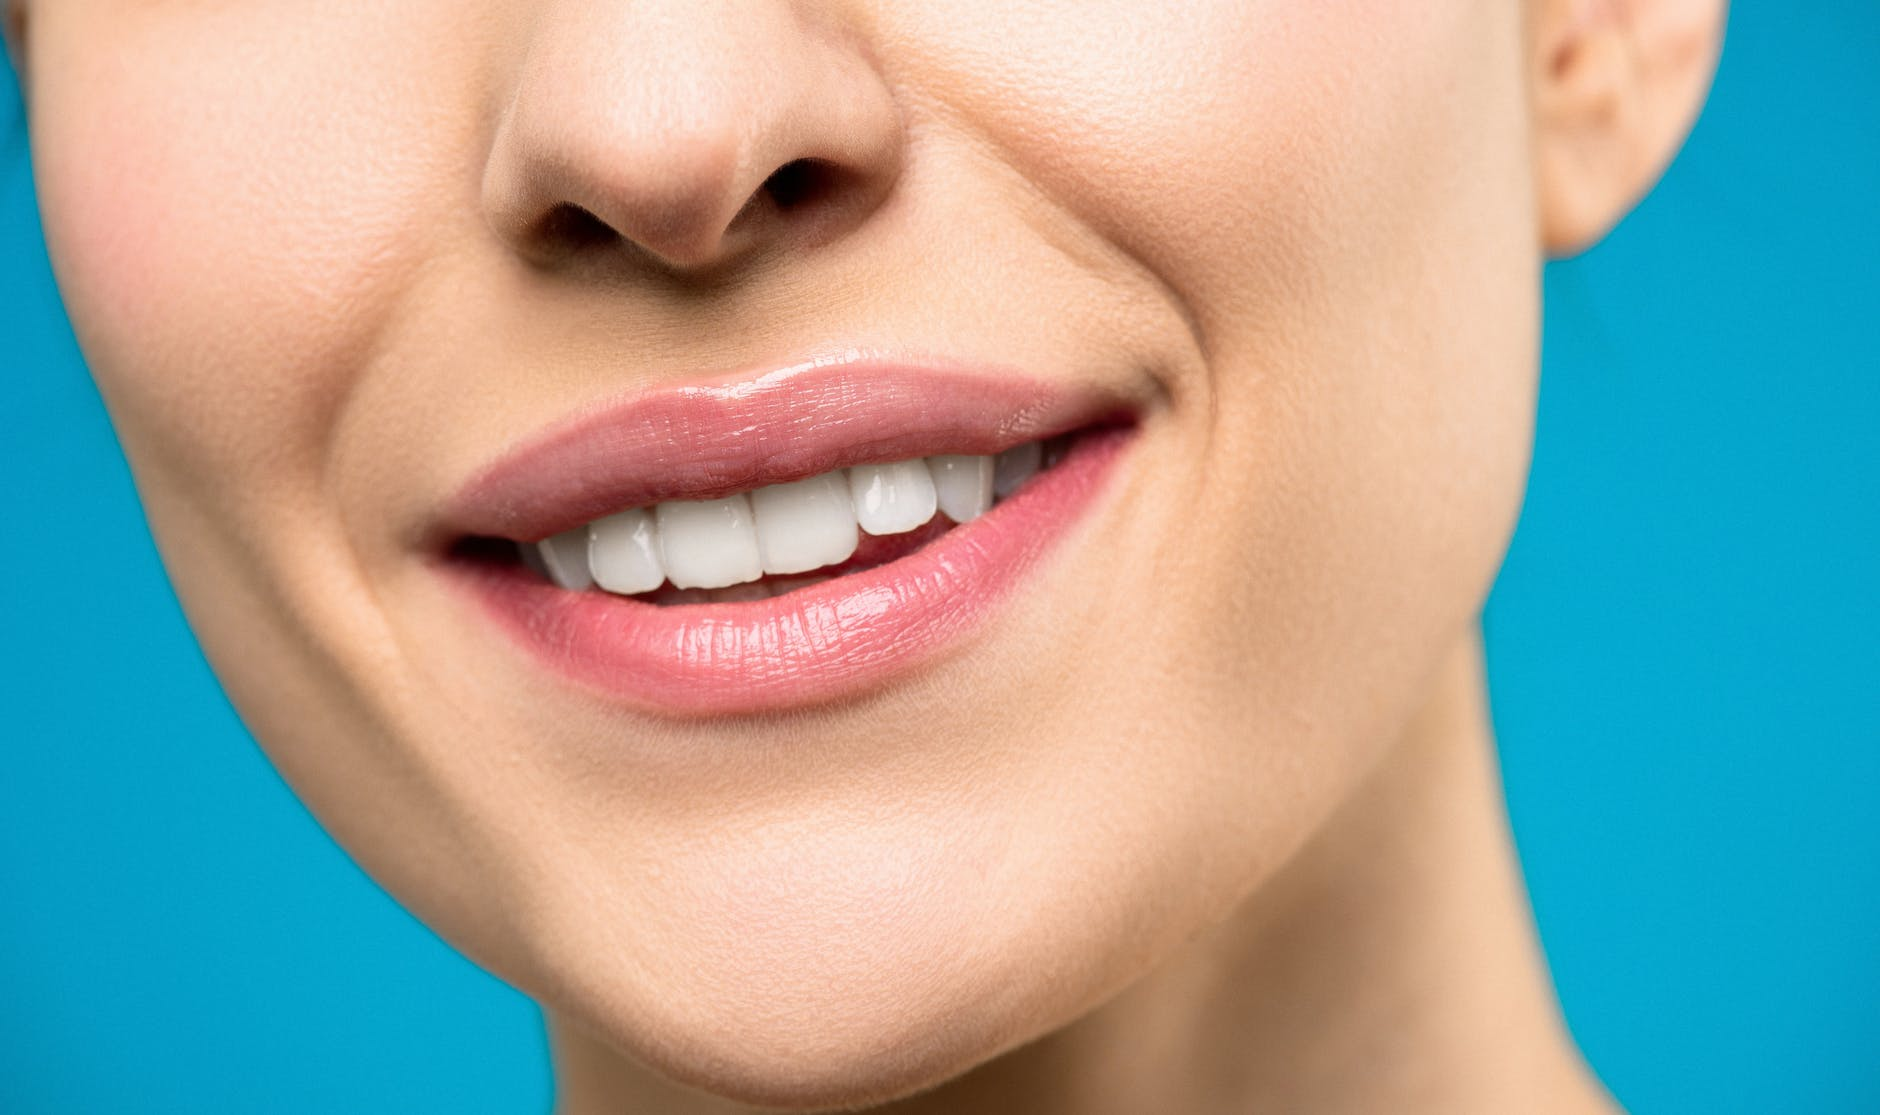 straighten your teeth with Invisalign treatment